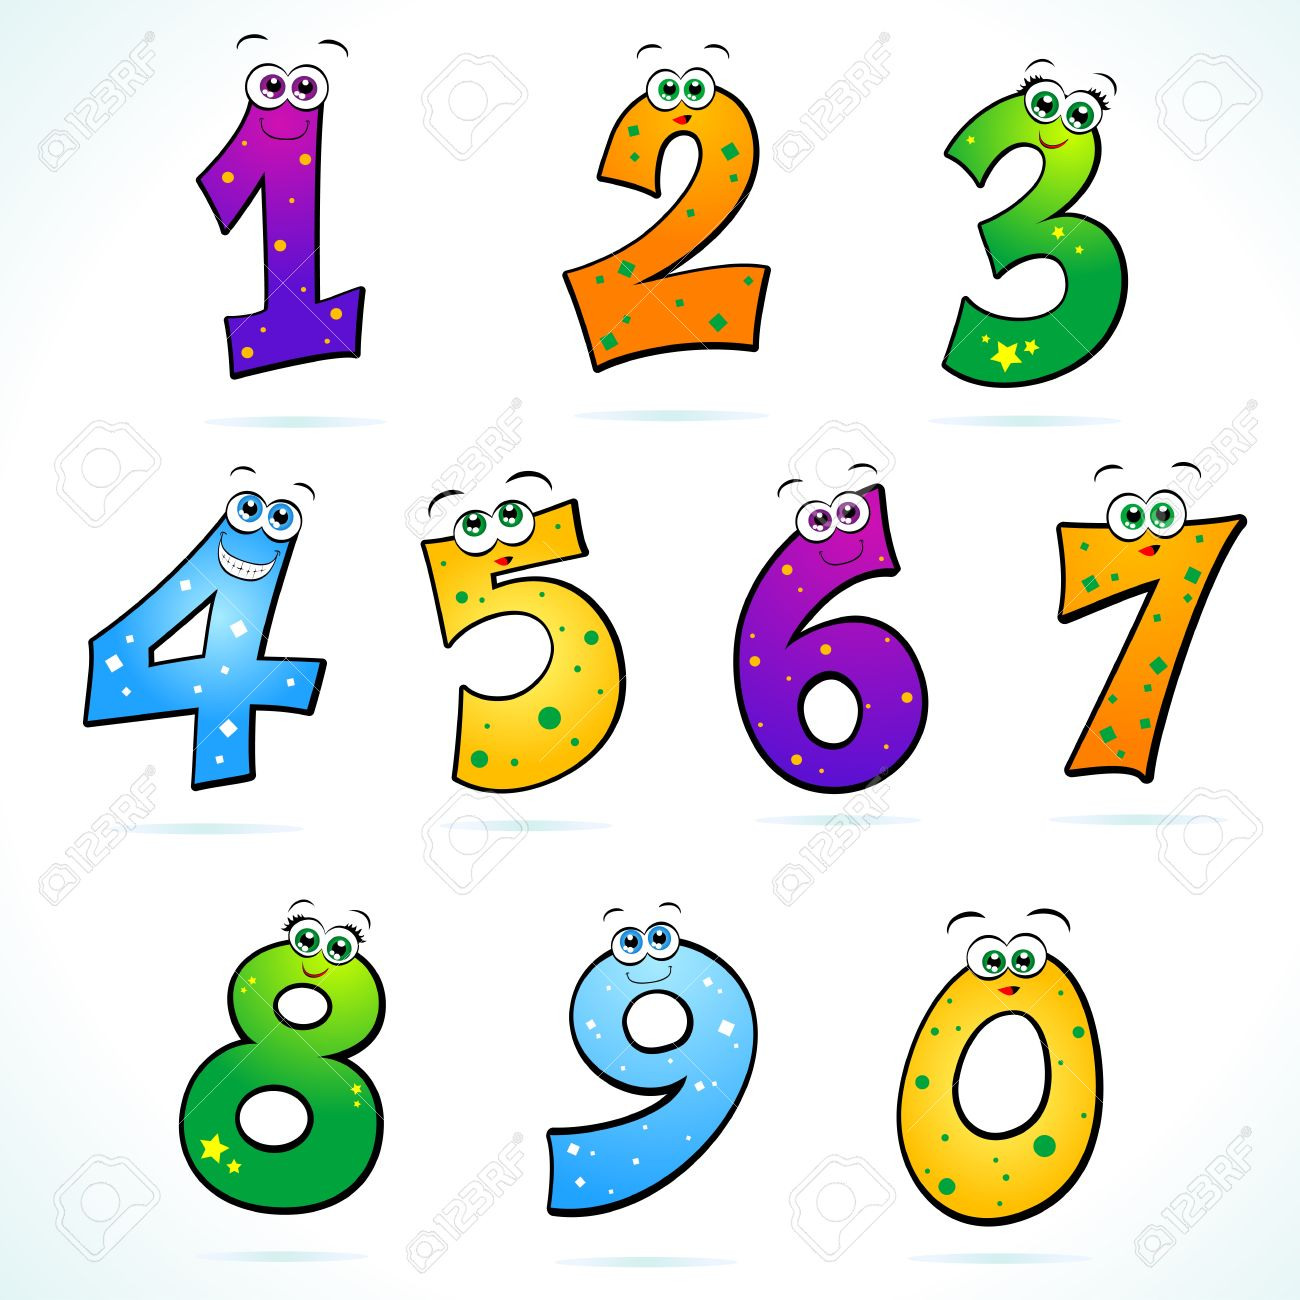 Artistic numbers clipart freeuse library Funny Numbers Clipart freeuse library